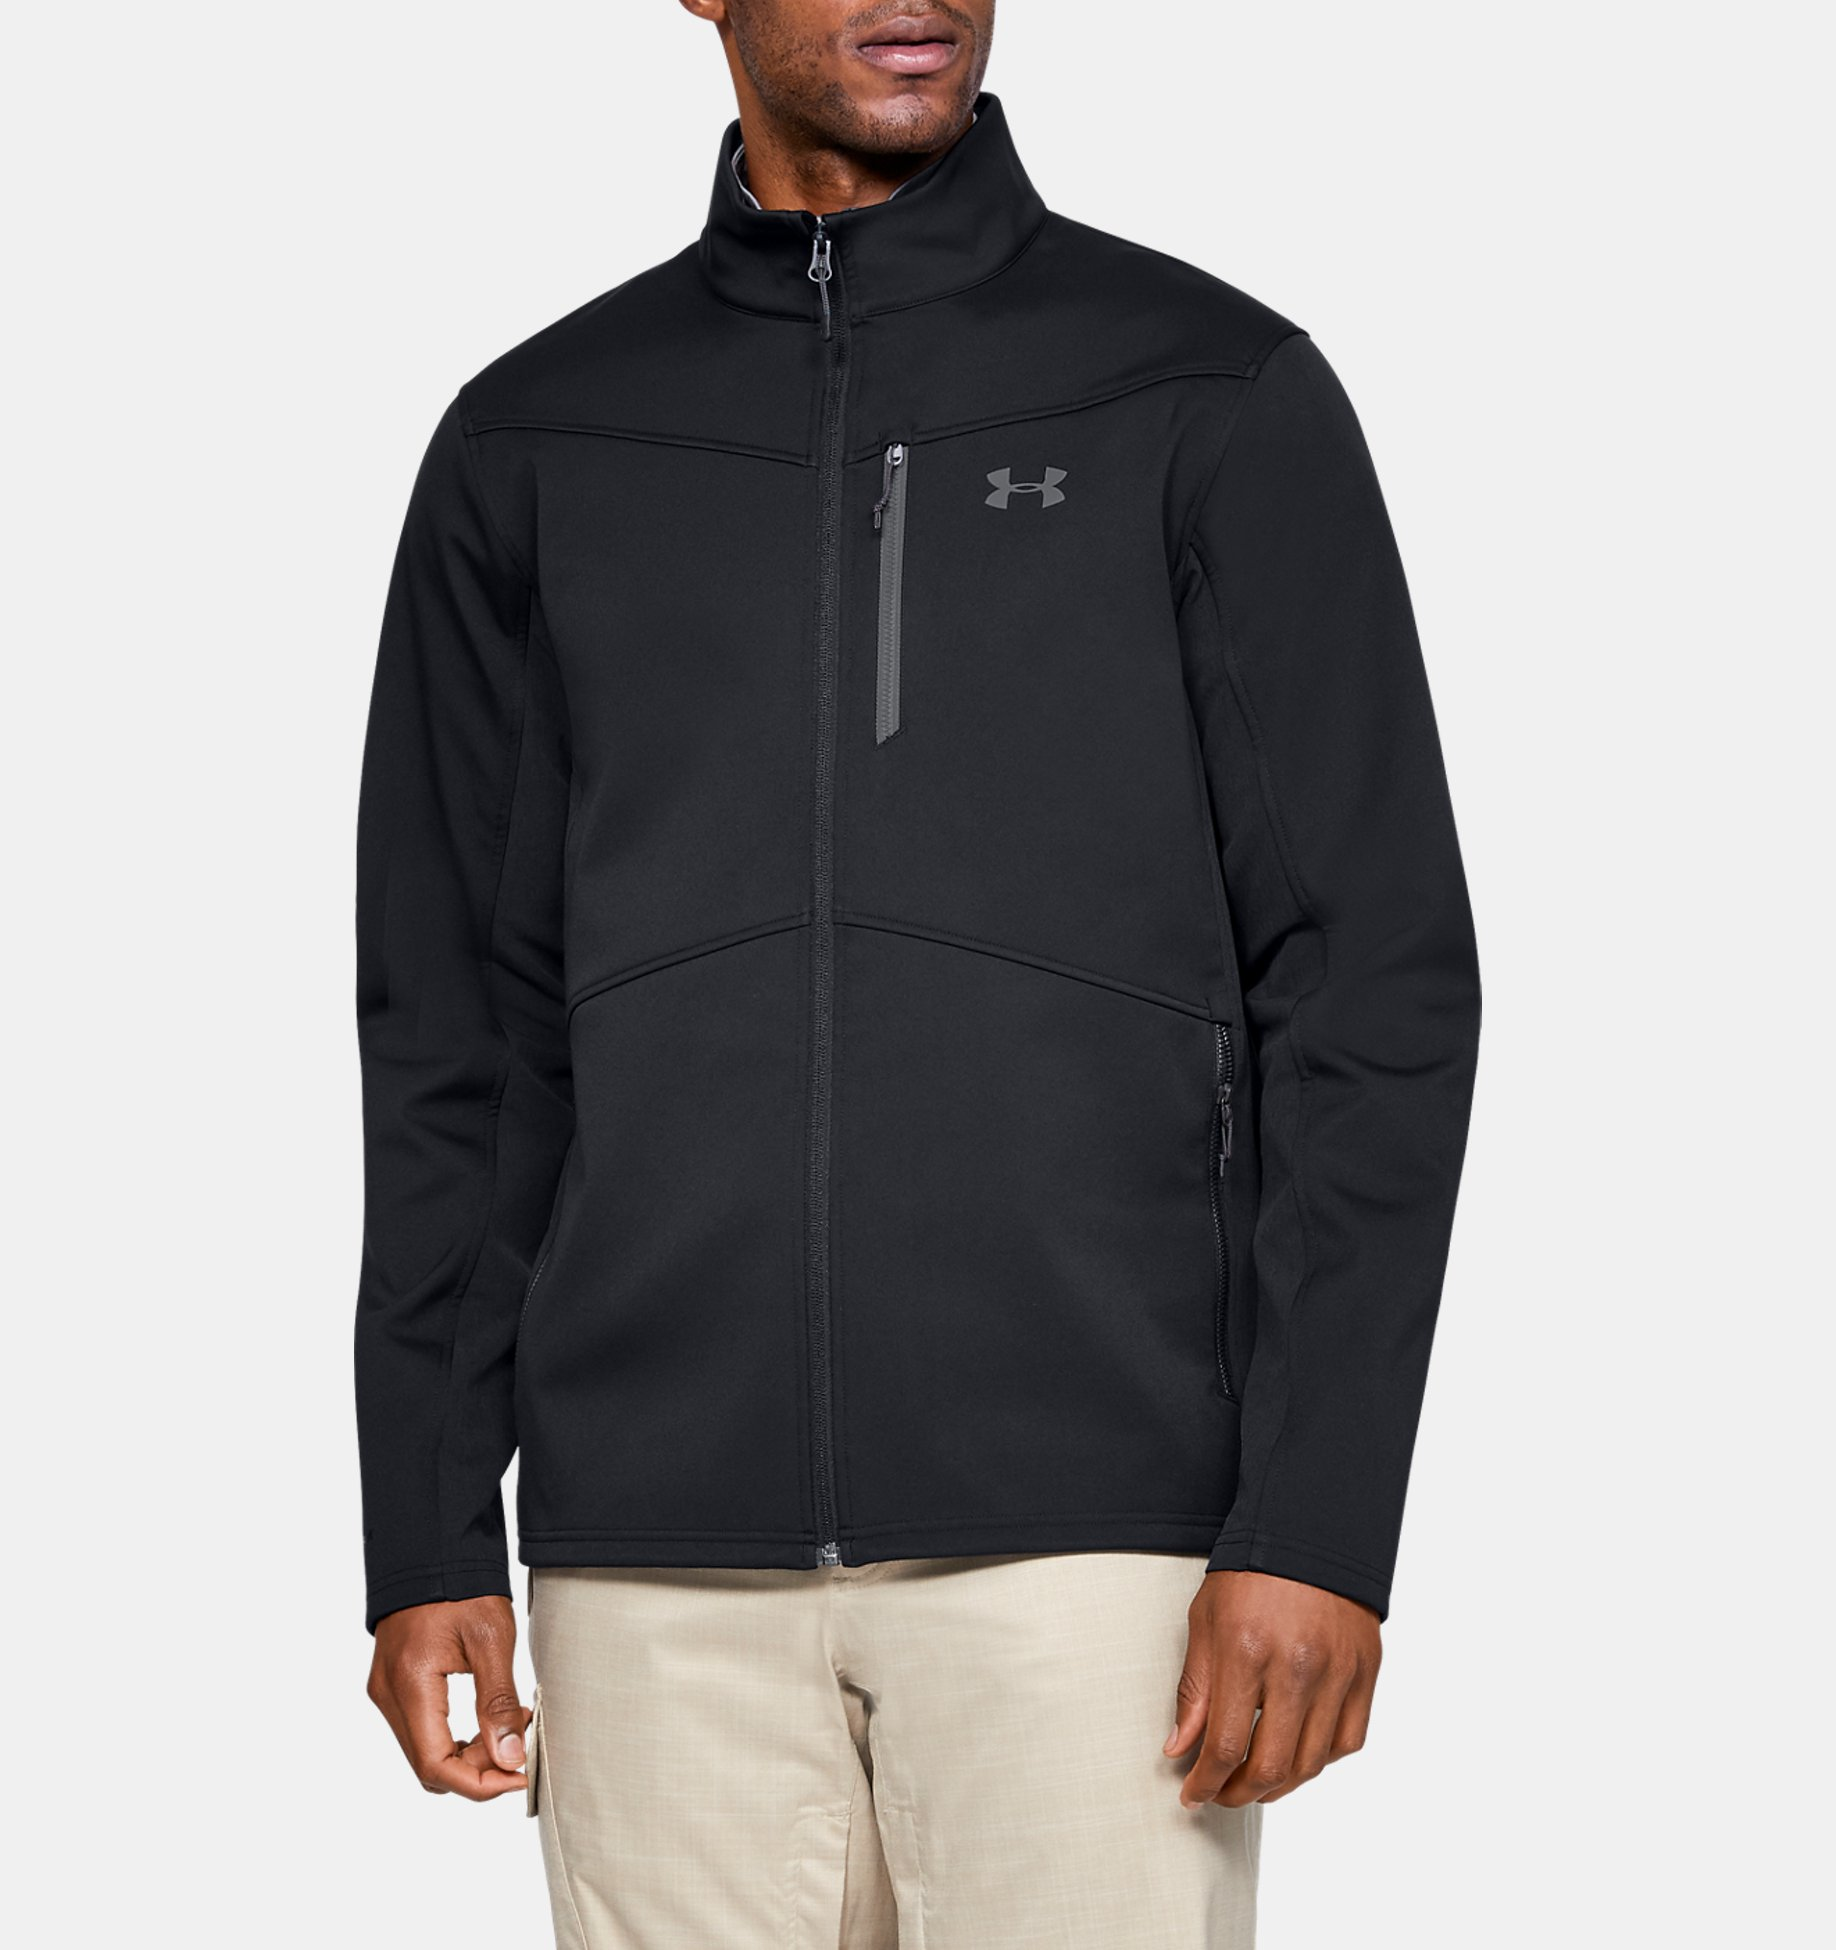 Underarmour Mens ColdGear Infrared Shield Jacket